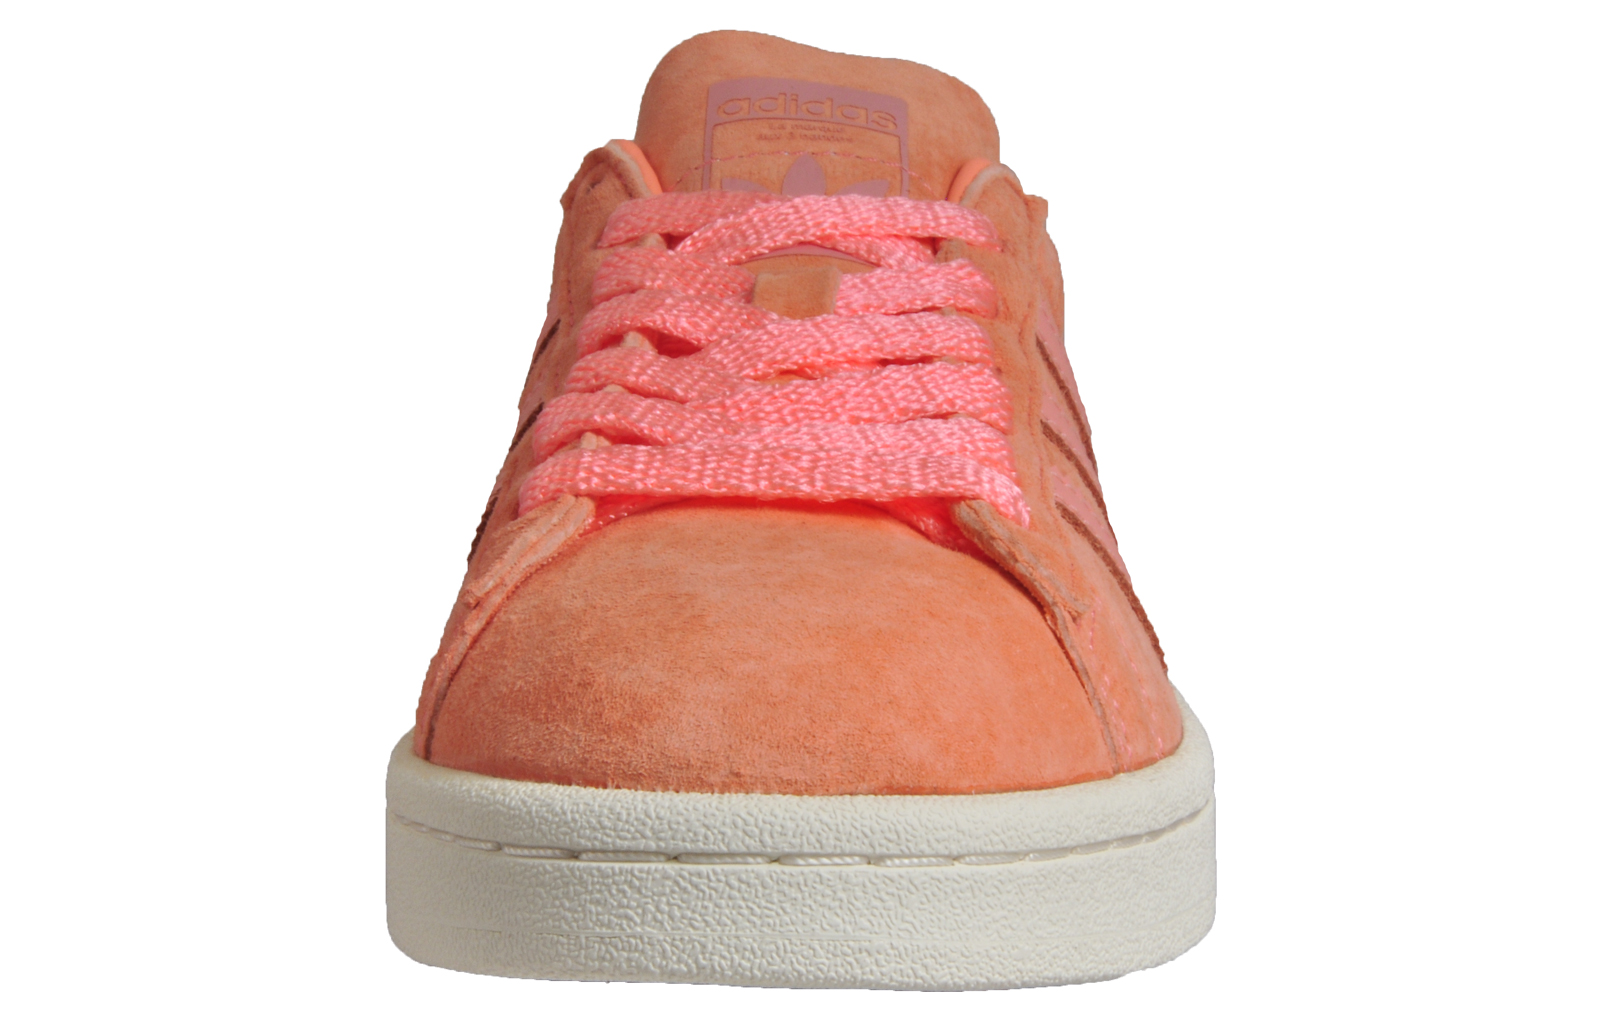 check out ba7a6 6b381 Adidas Originals Campus Womens Ladies Suede Leather Retro Trainers Peach  Pink